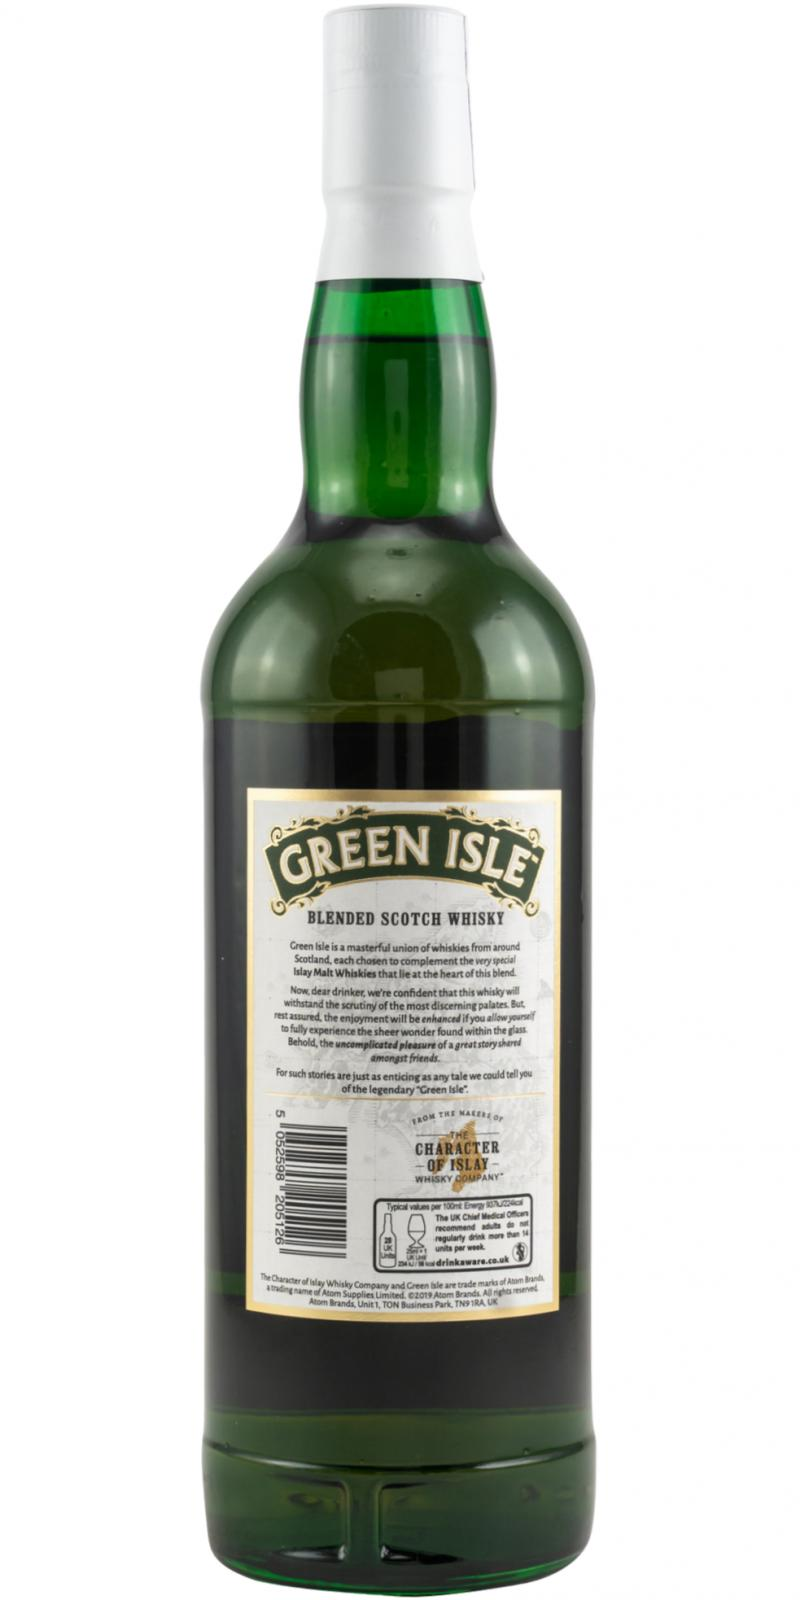 Blended Scotch Whisky Green Isle TCIWC